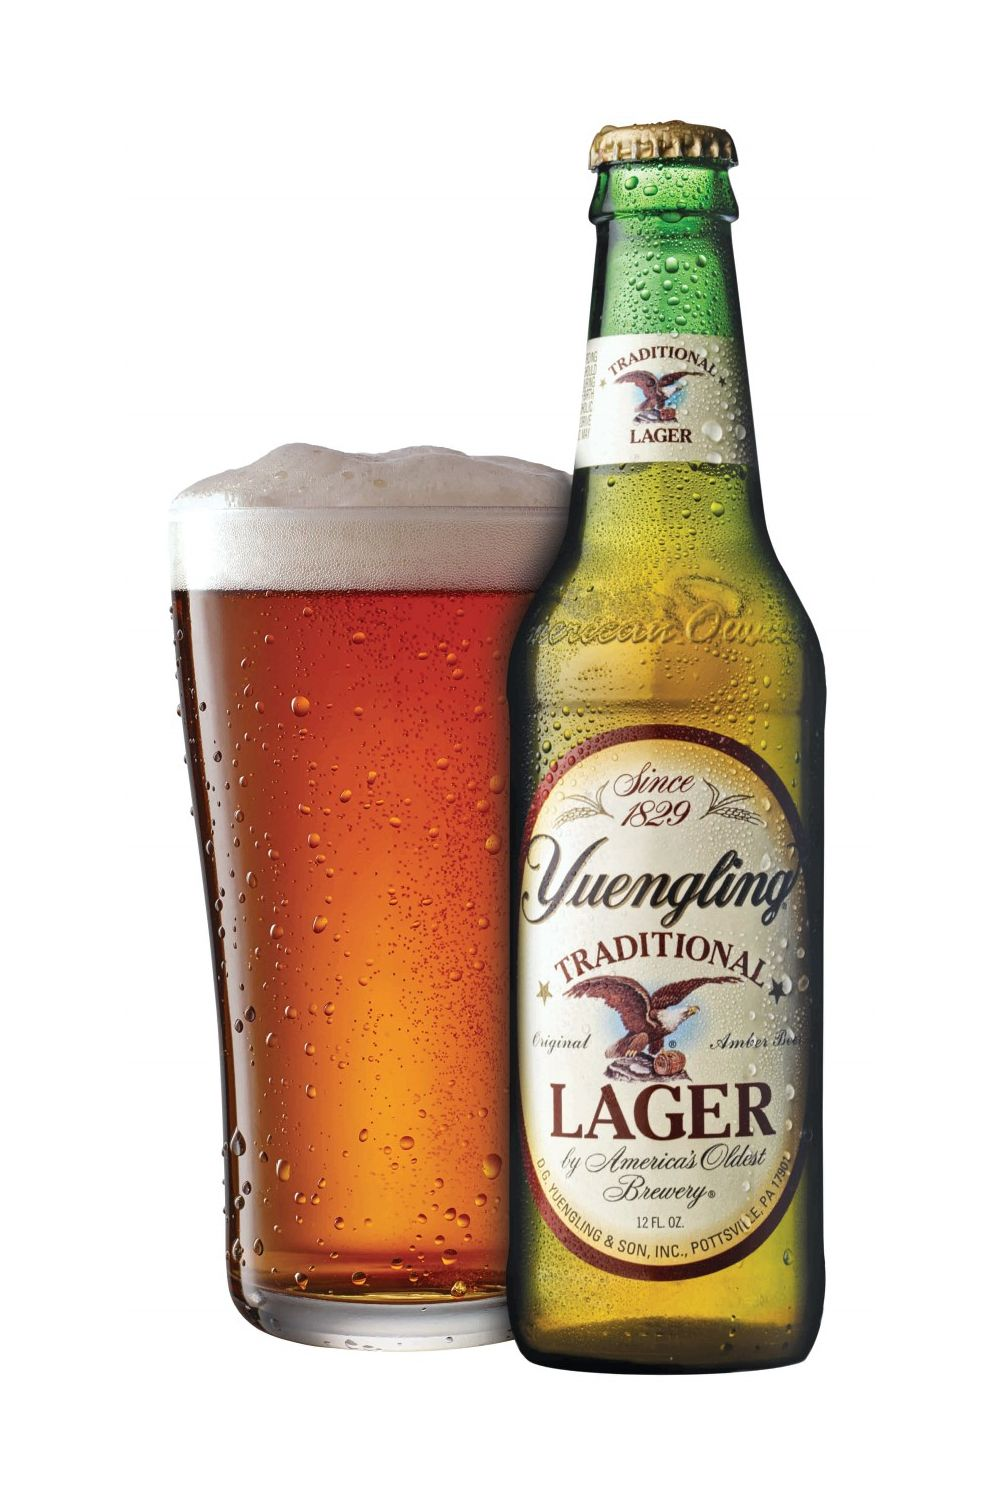 "<p>A bar and liquor store&nbsp&#x3B;staple,&nbsp&#x3B;Yuengling is an old faithful beer staple. And if you're counting calories, you can't go wrong with a classic, refreshing lager that's cheaper than most.&nbsp&#x3B;</p><p><strong data-redactor-tag=""strong"">Yuengling Lager (4.5% ABV), 128 calories</strong></p>"